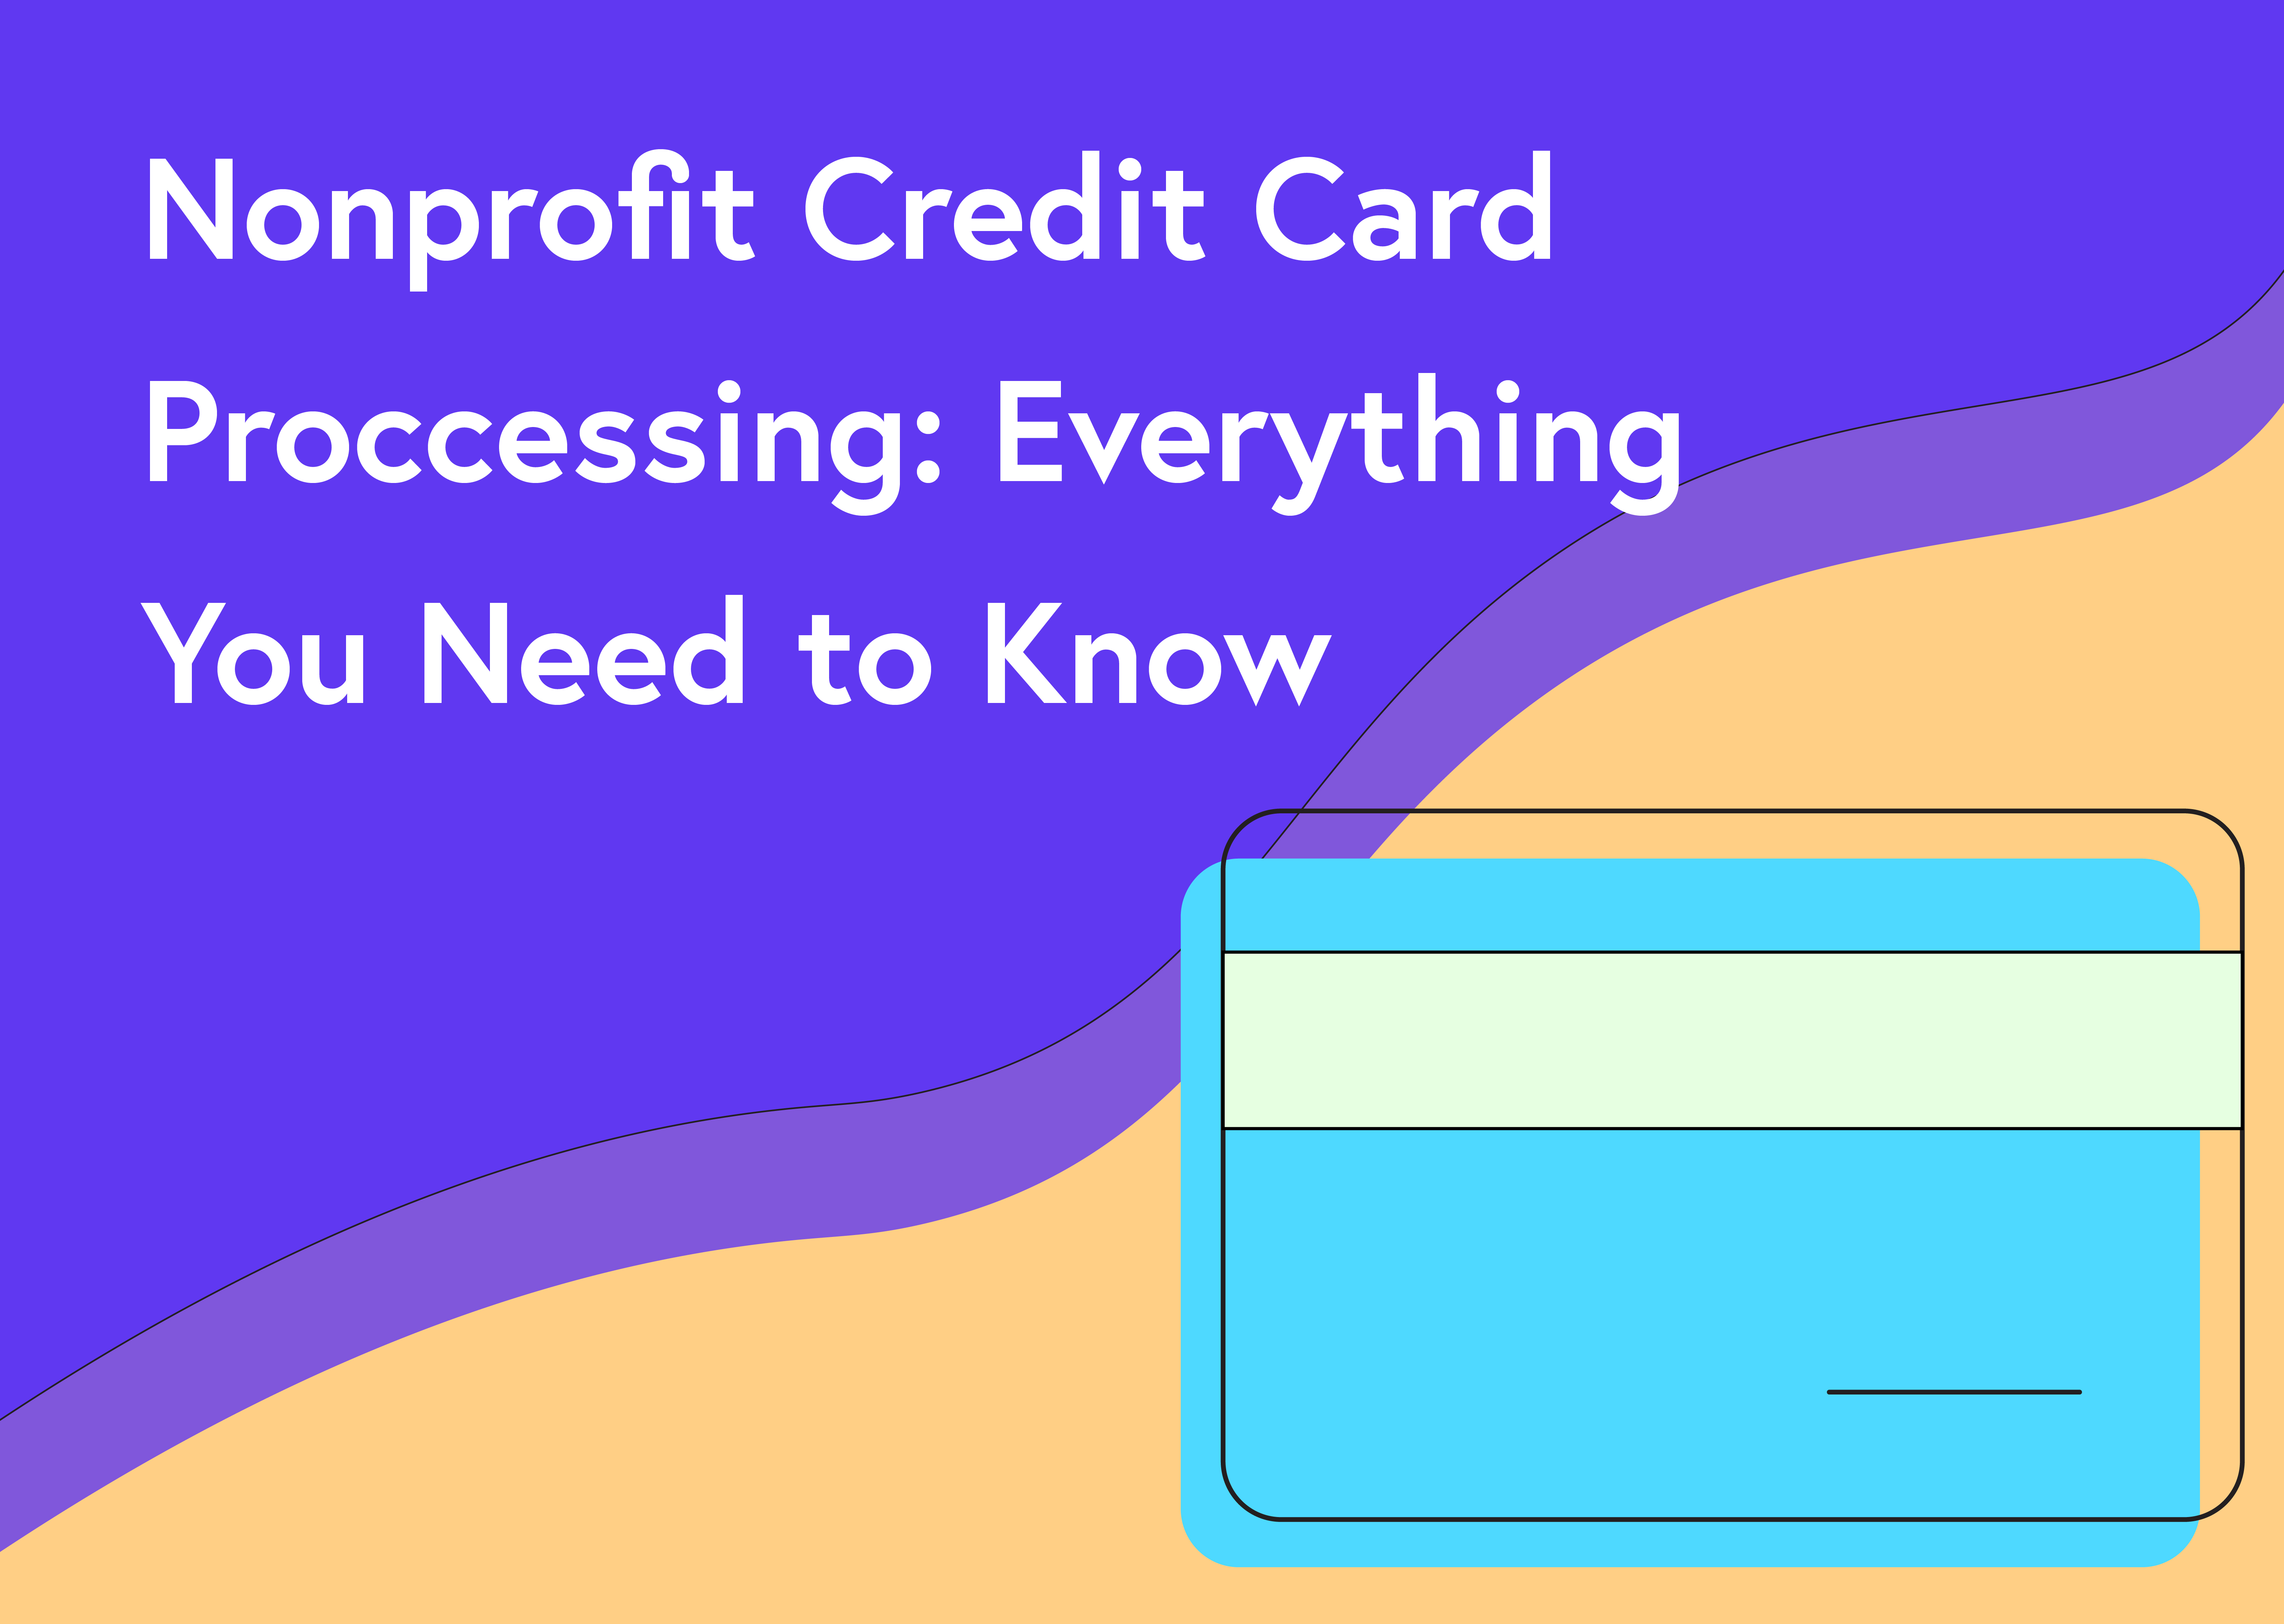 Non profit credit card processing